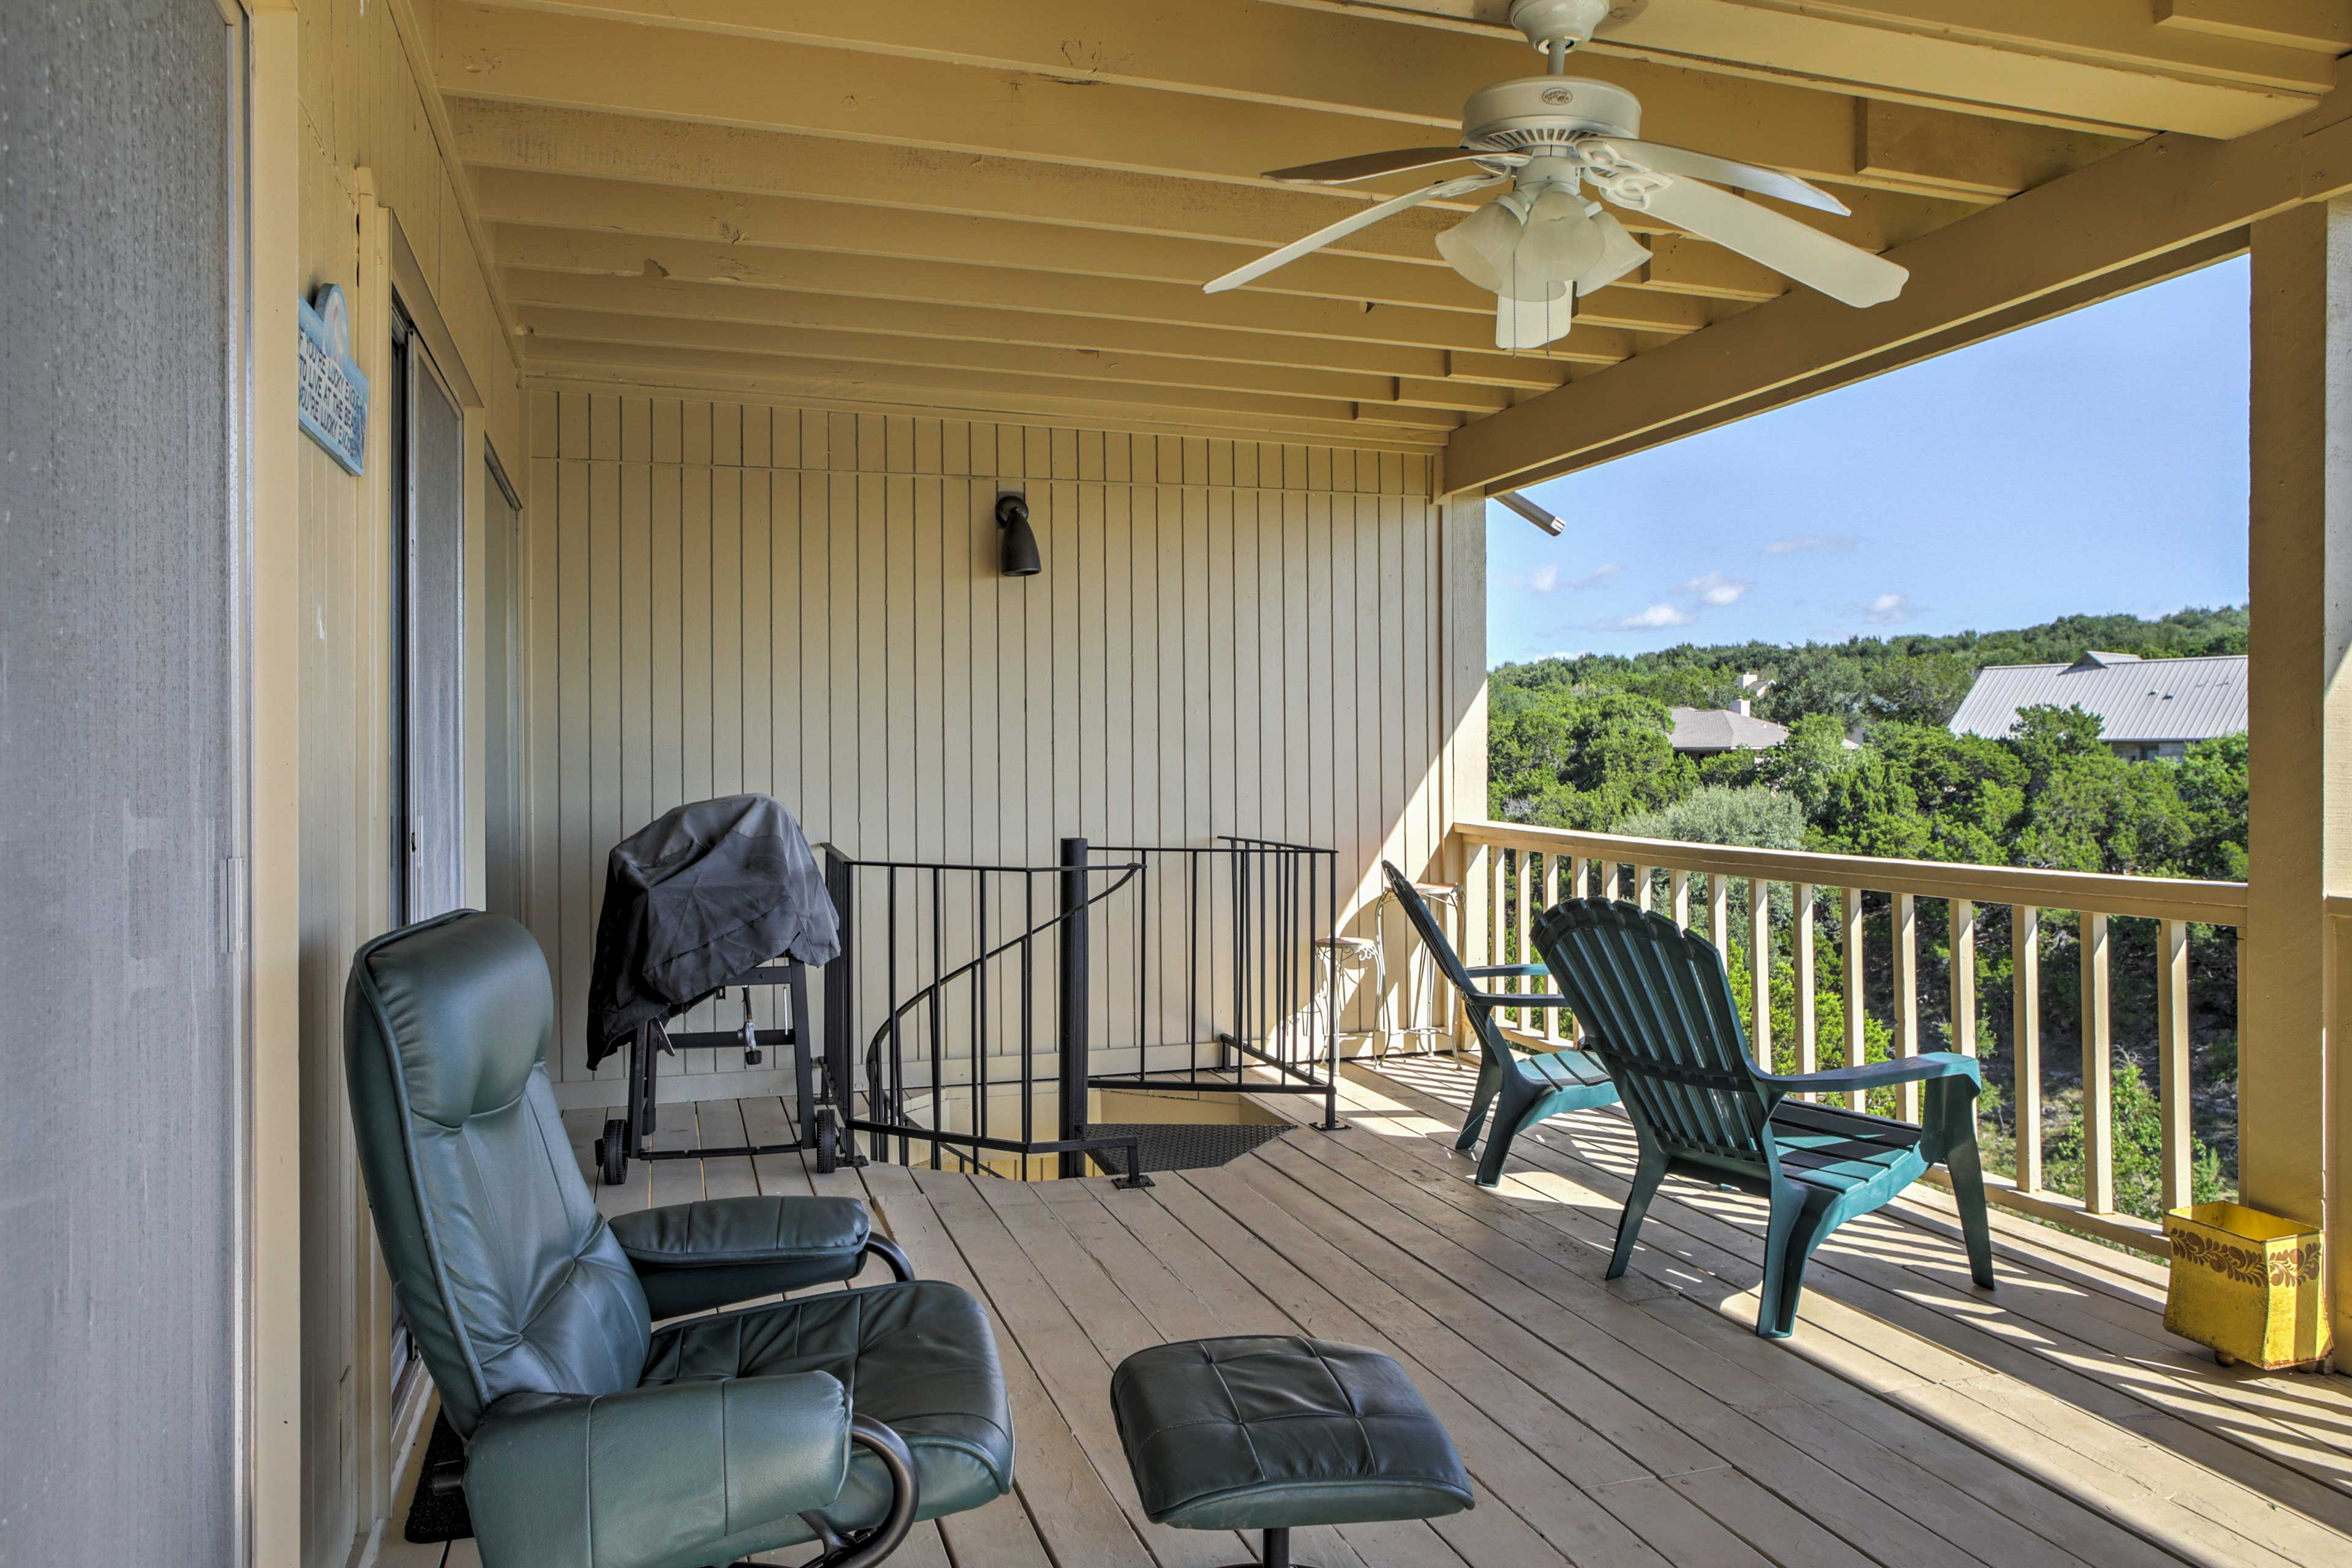 Lounge on the patio furniture while taking in the views.